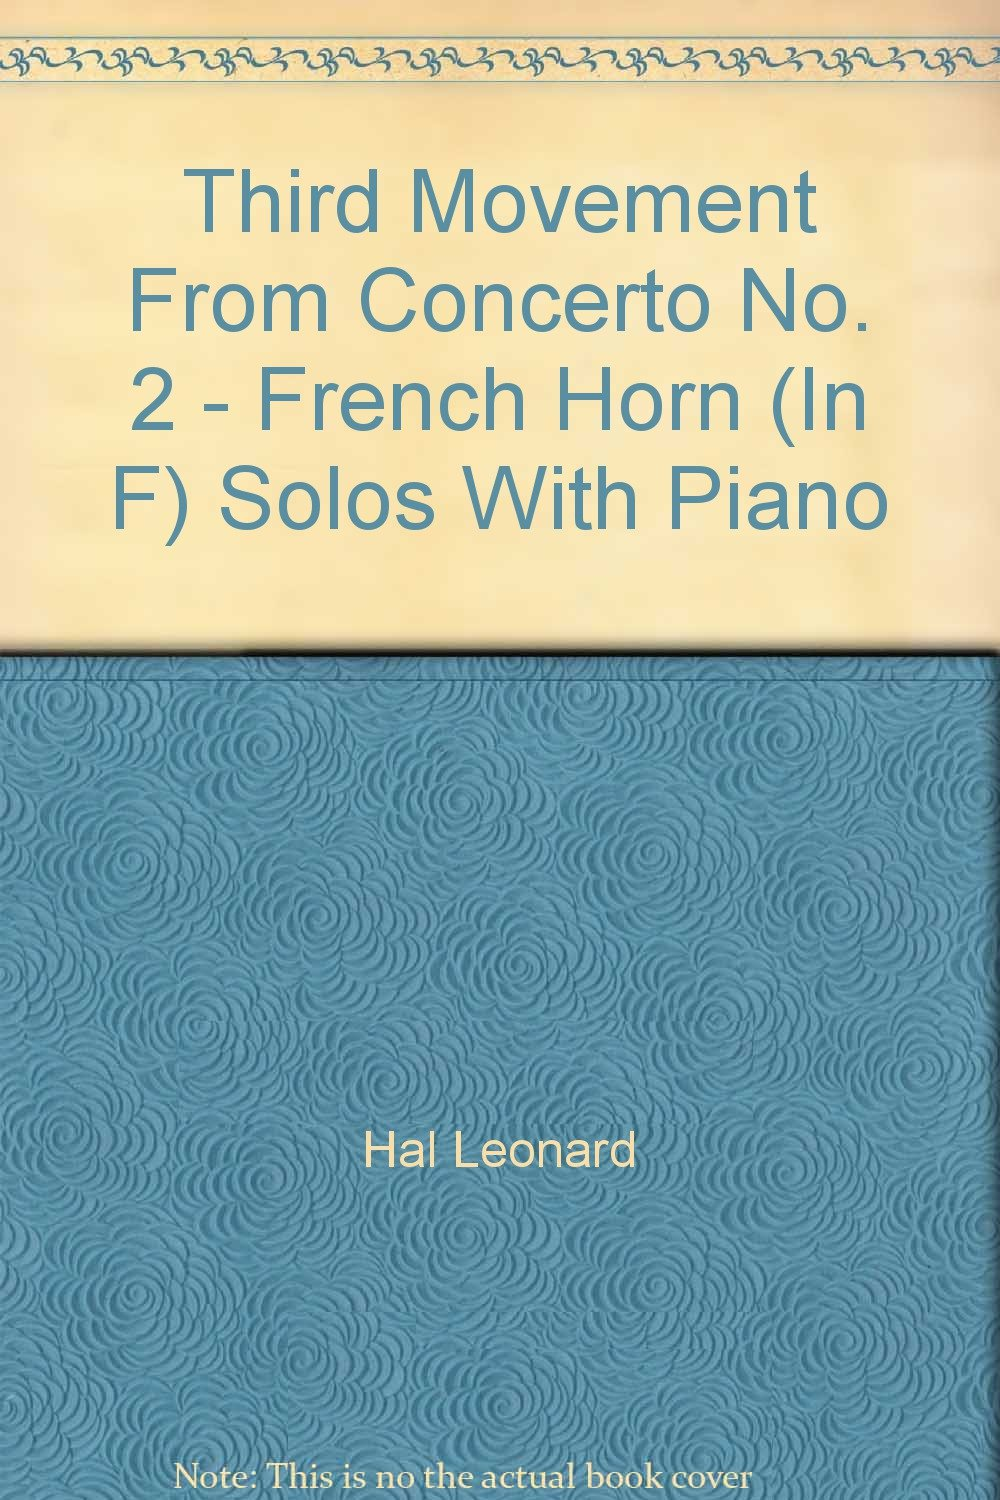 Third Movement From Concerto No. 2 - French Horn (In F) Solos With Piano